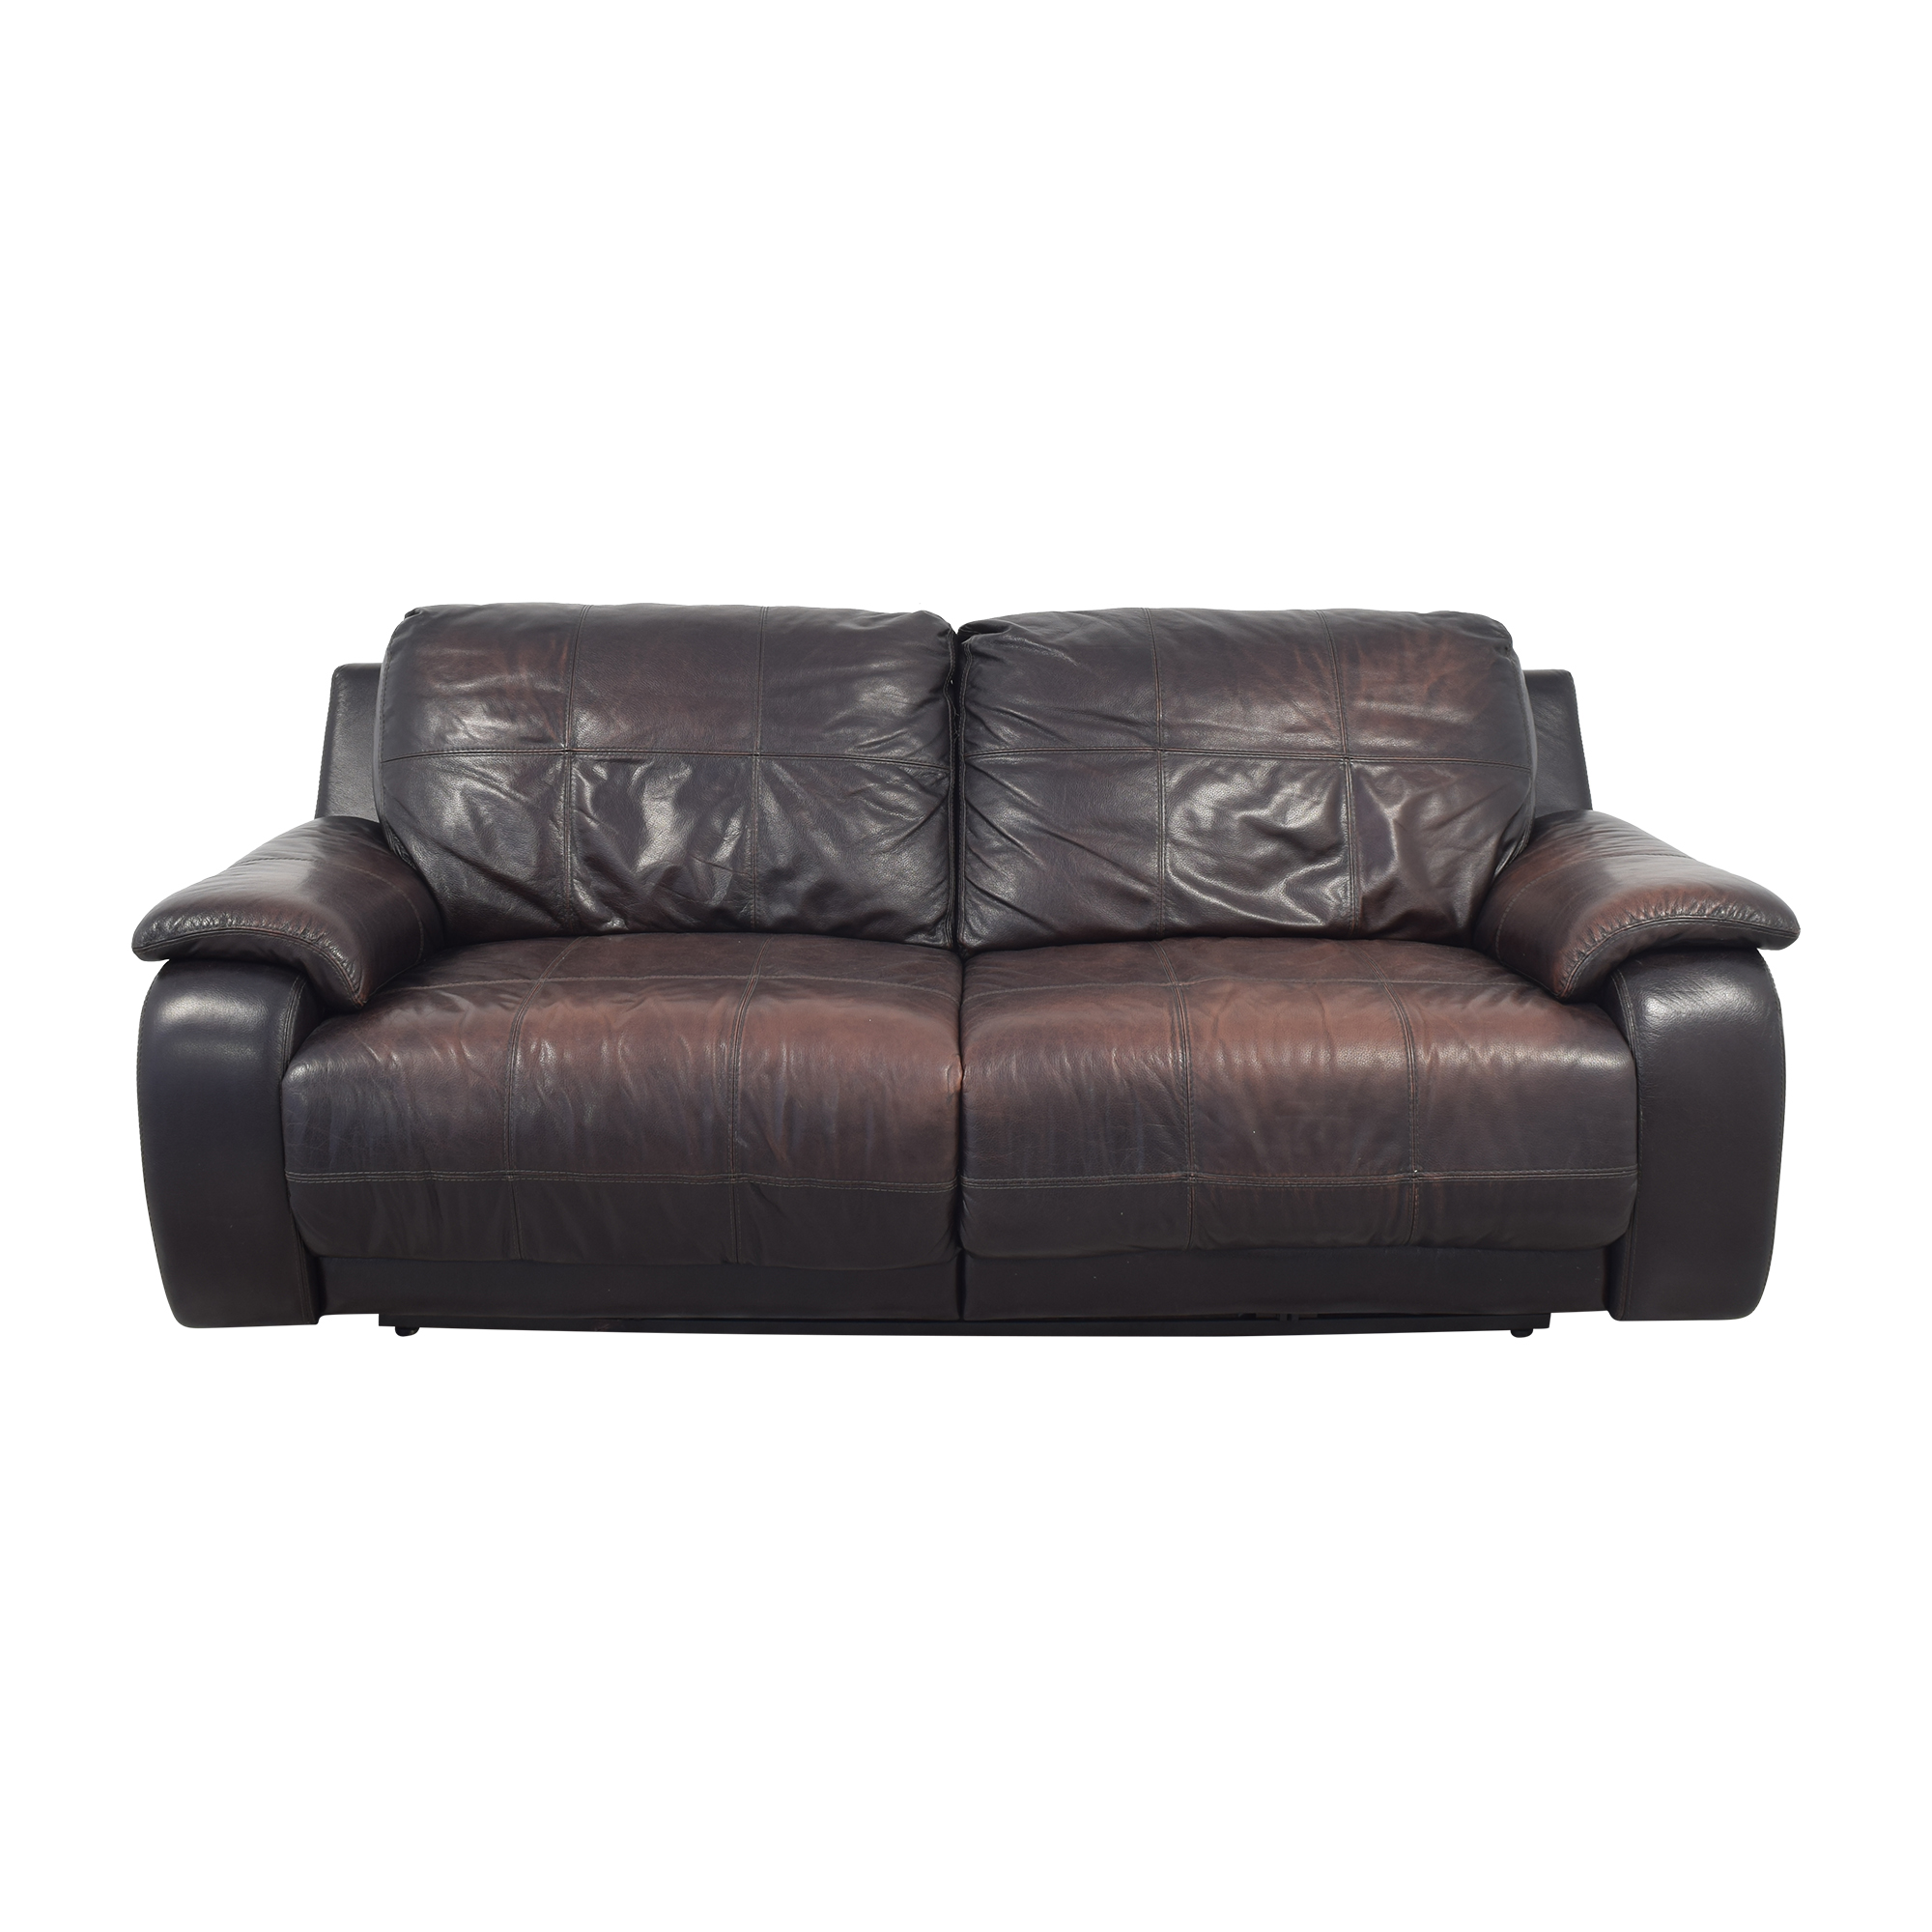 Raymour & Flanigan Raymour & Flanigan Power Recliner Sofa for sale